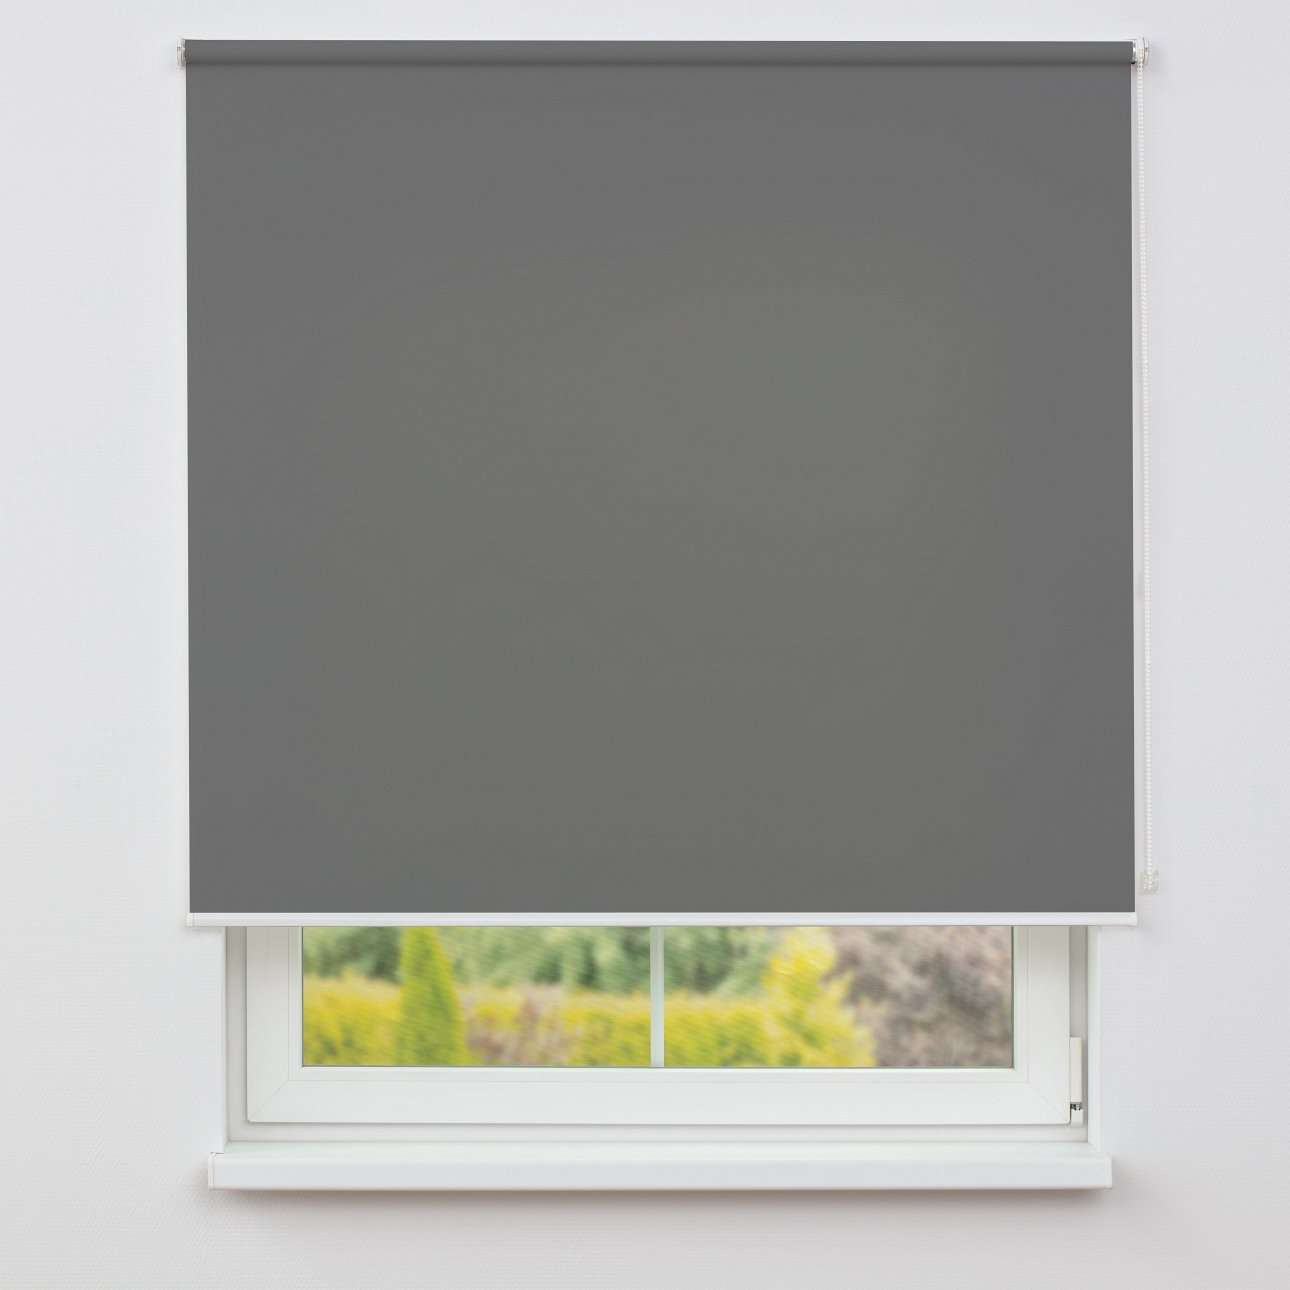 Blackout roller blind in collection Roller blind blackout, fabric: 061